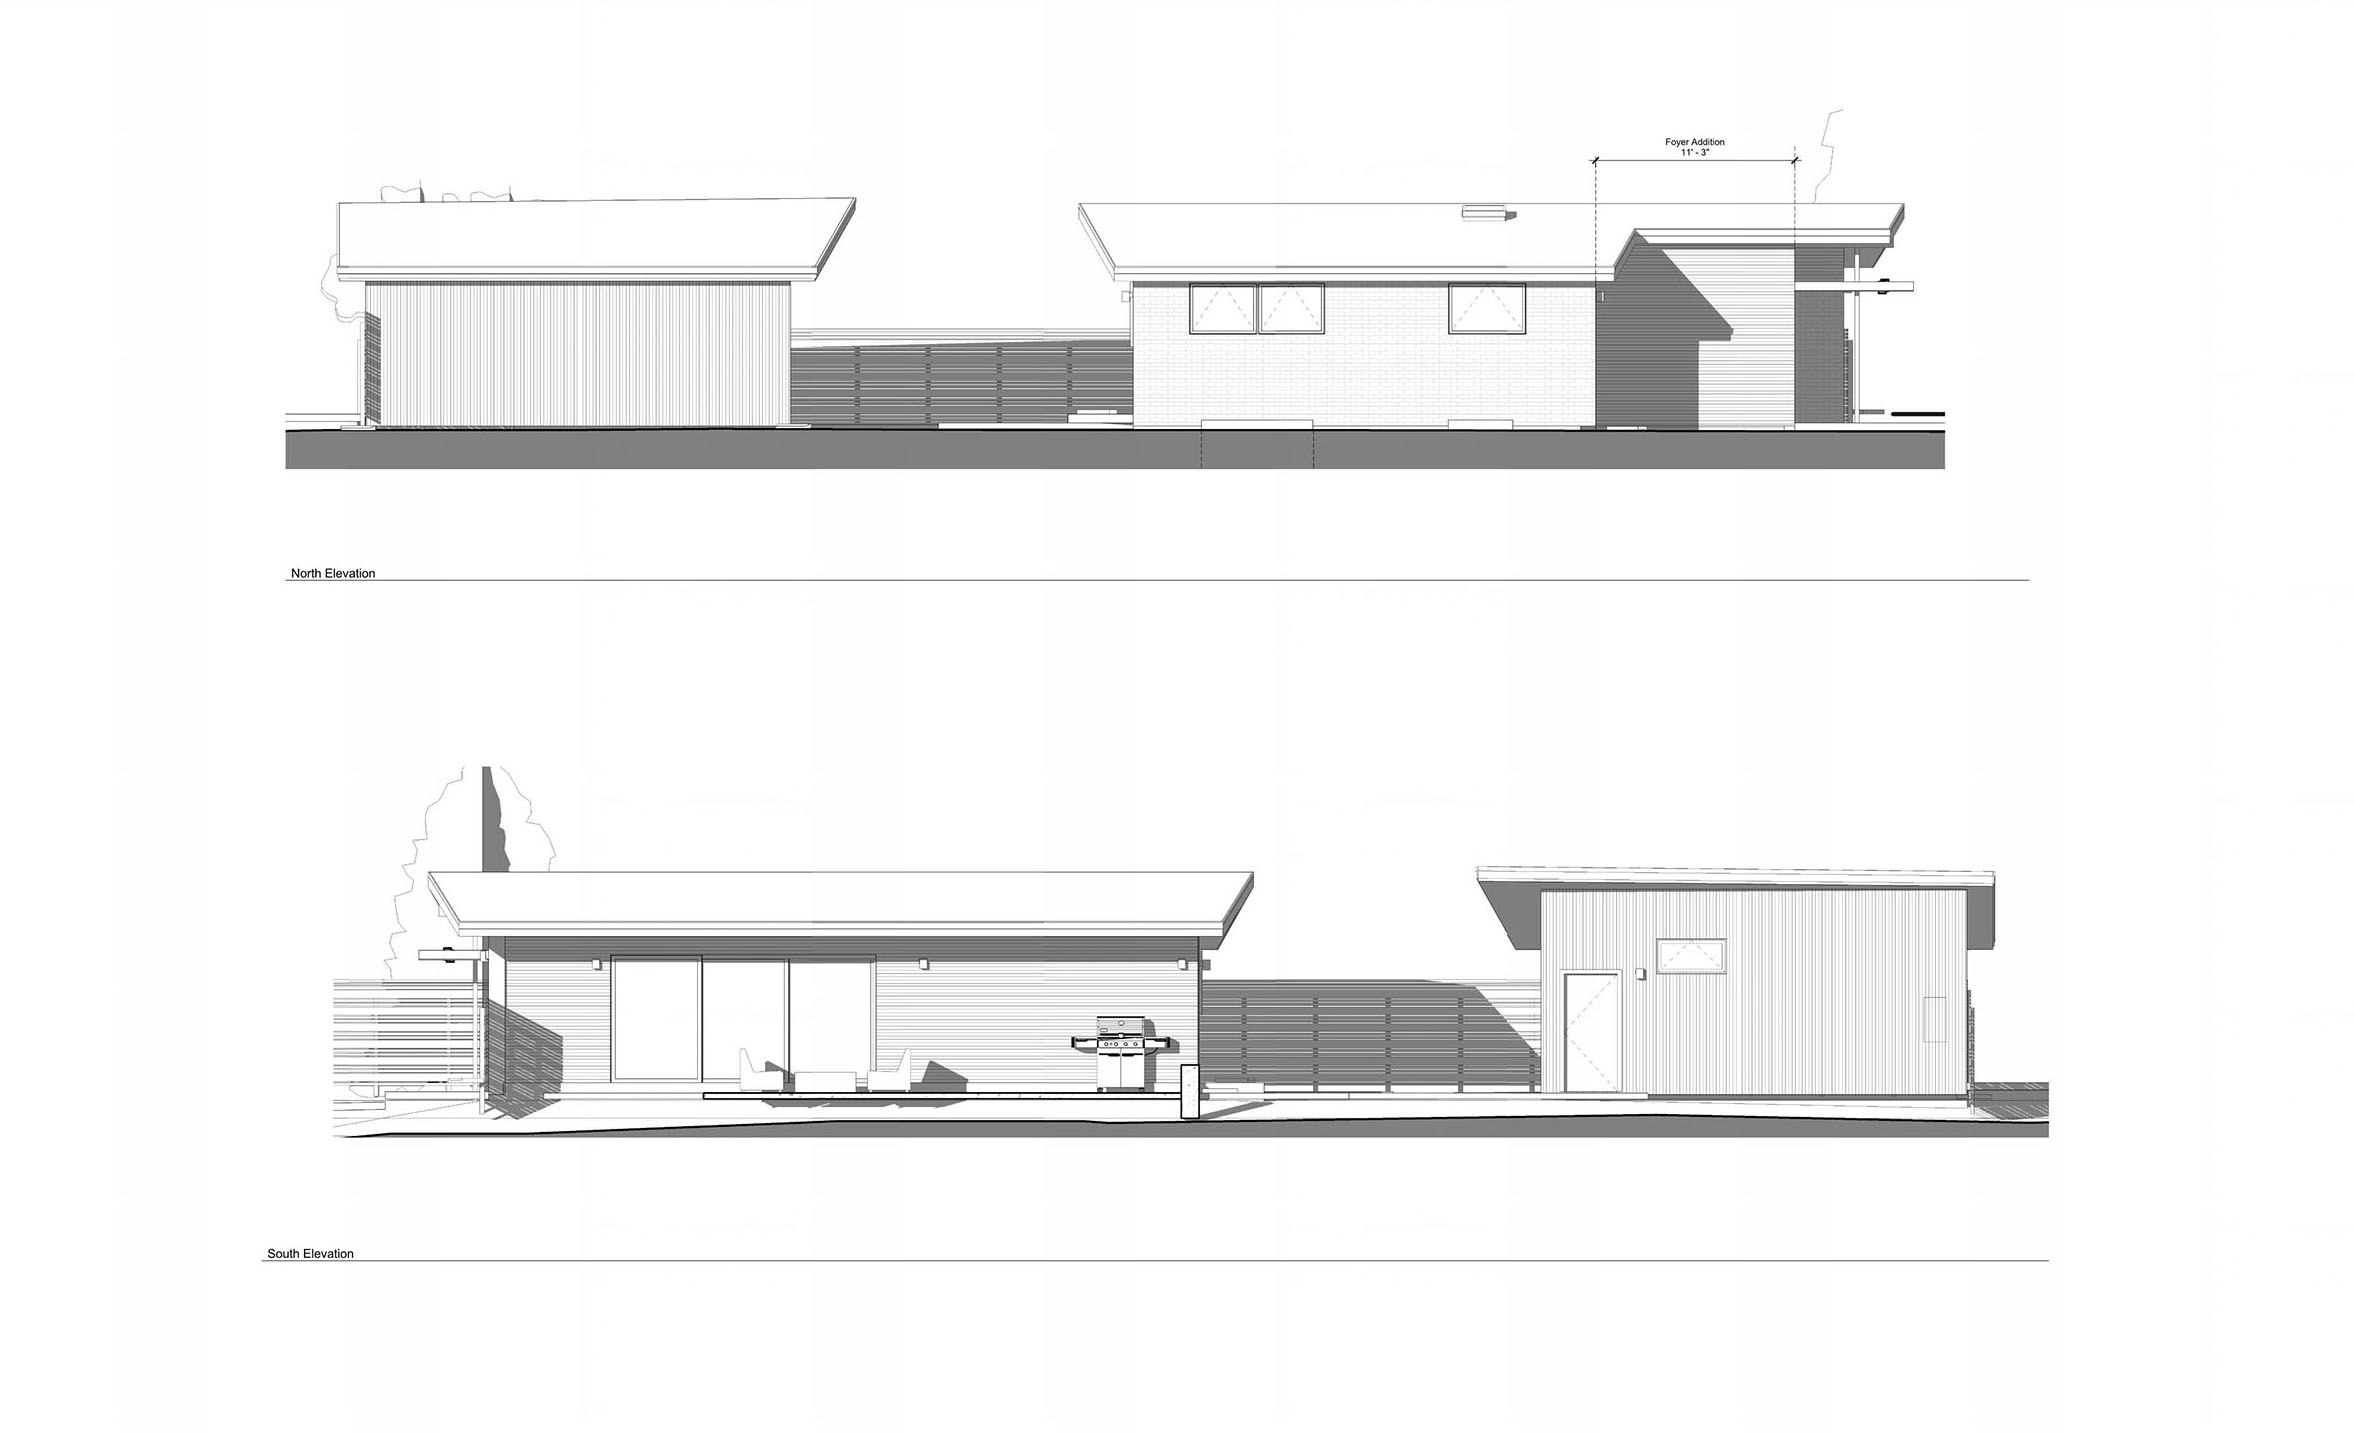 340 S Forest St - Cadence Exterior Overall Elevations.jpg